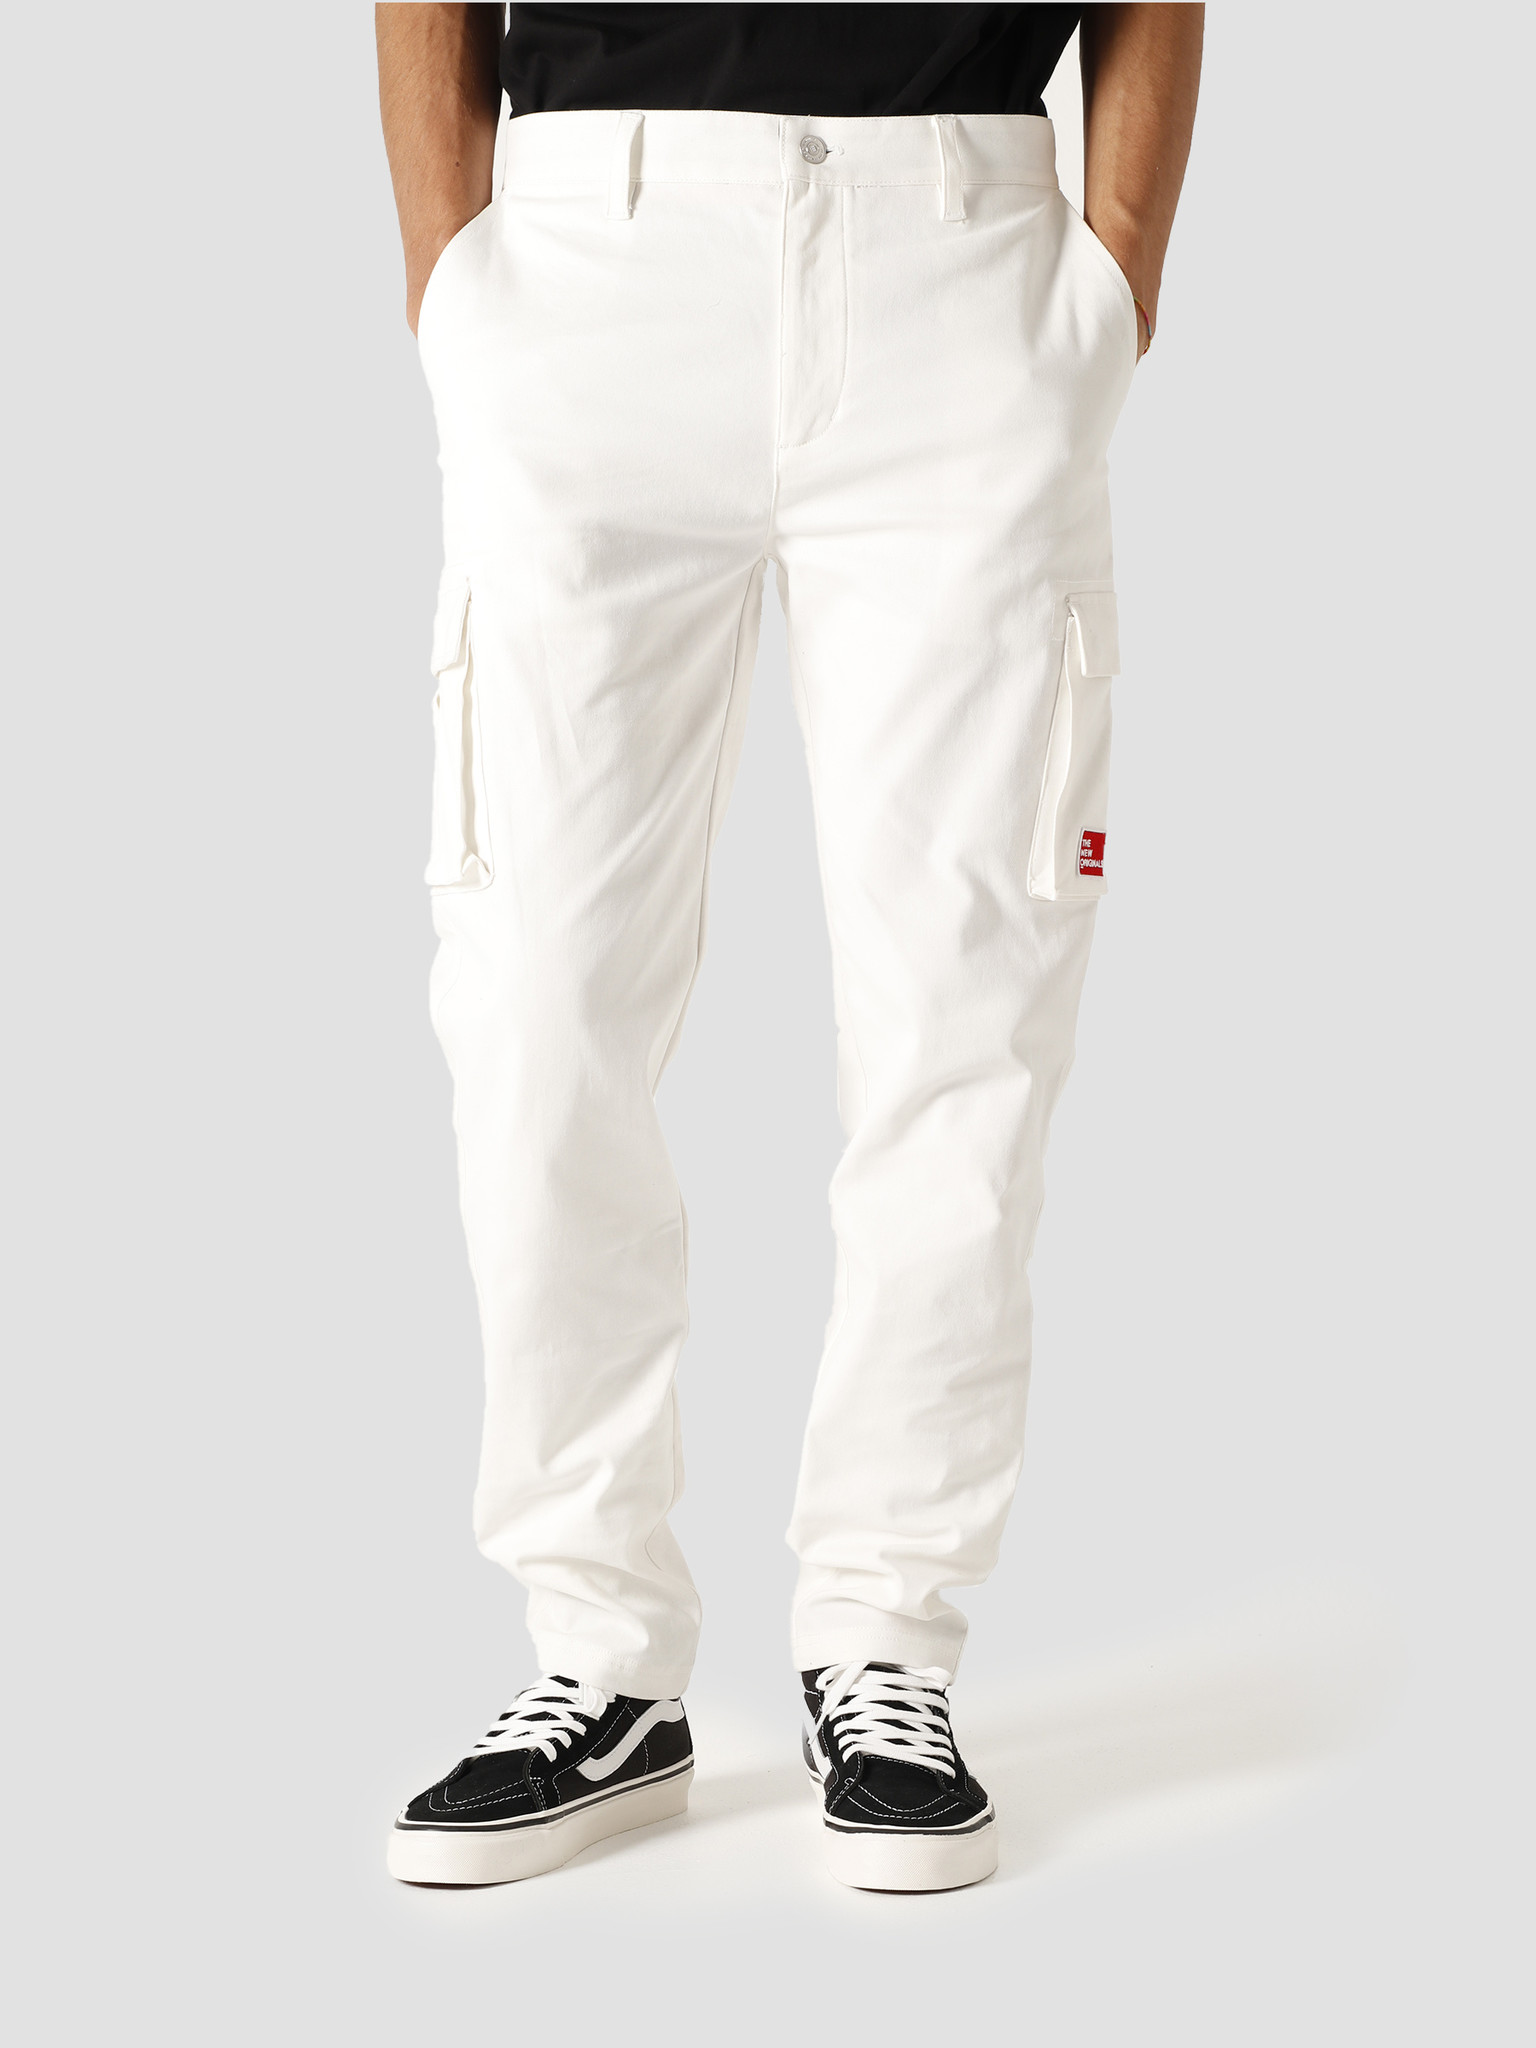 The New Originals The New Originals Midfield Trousers White